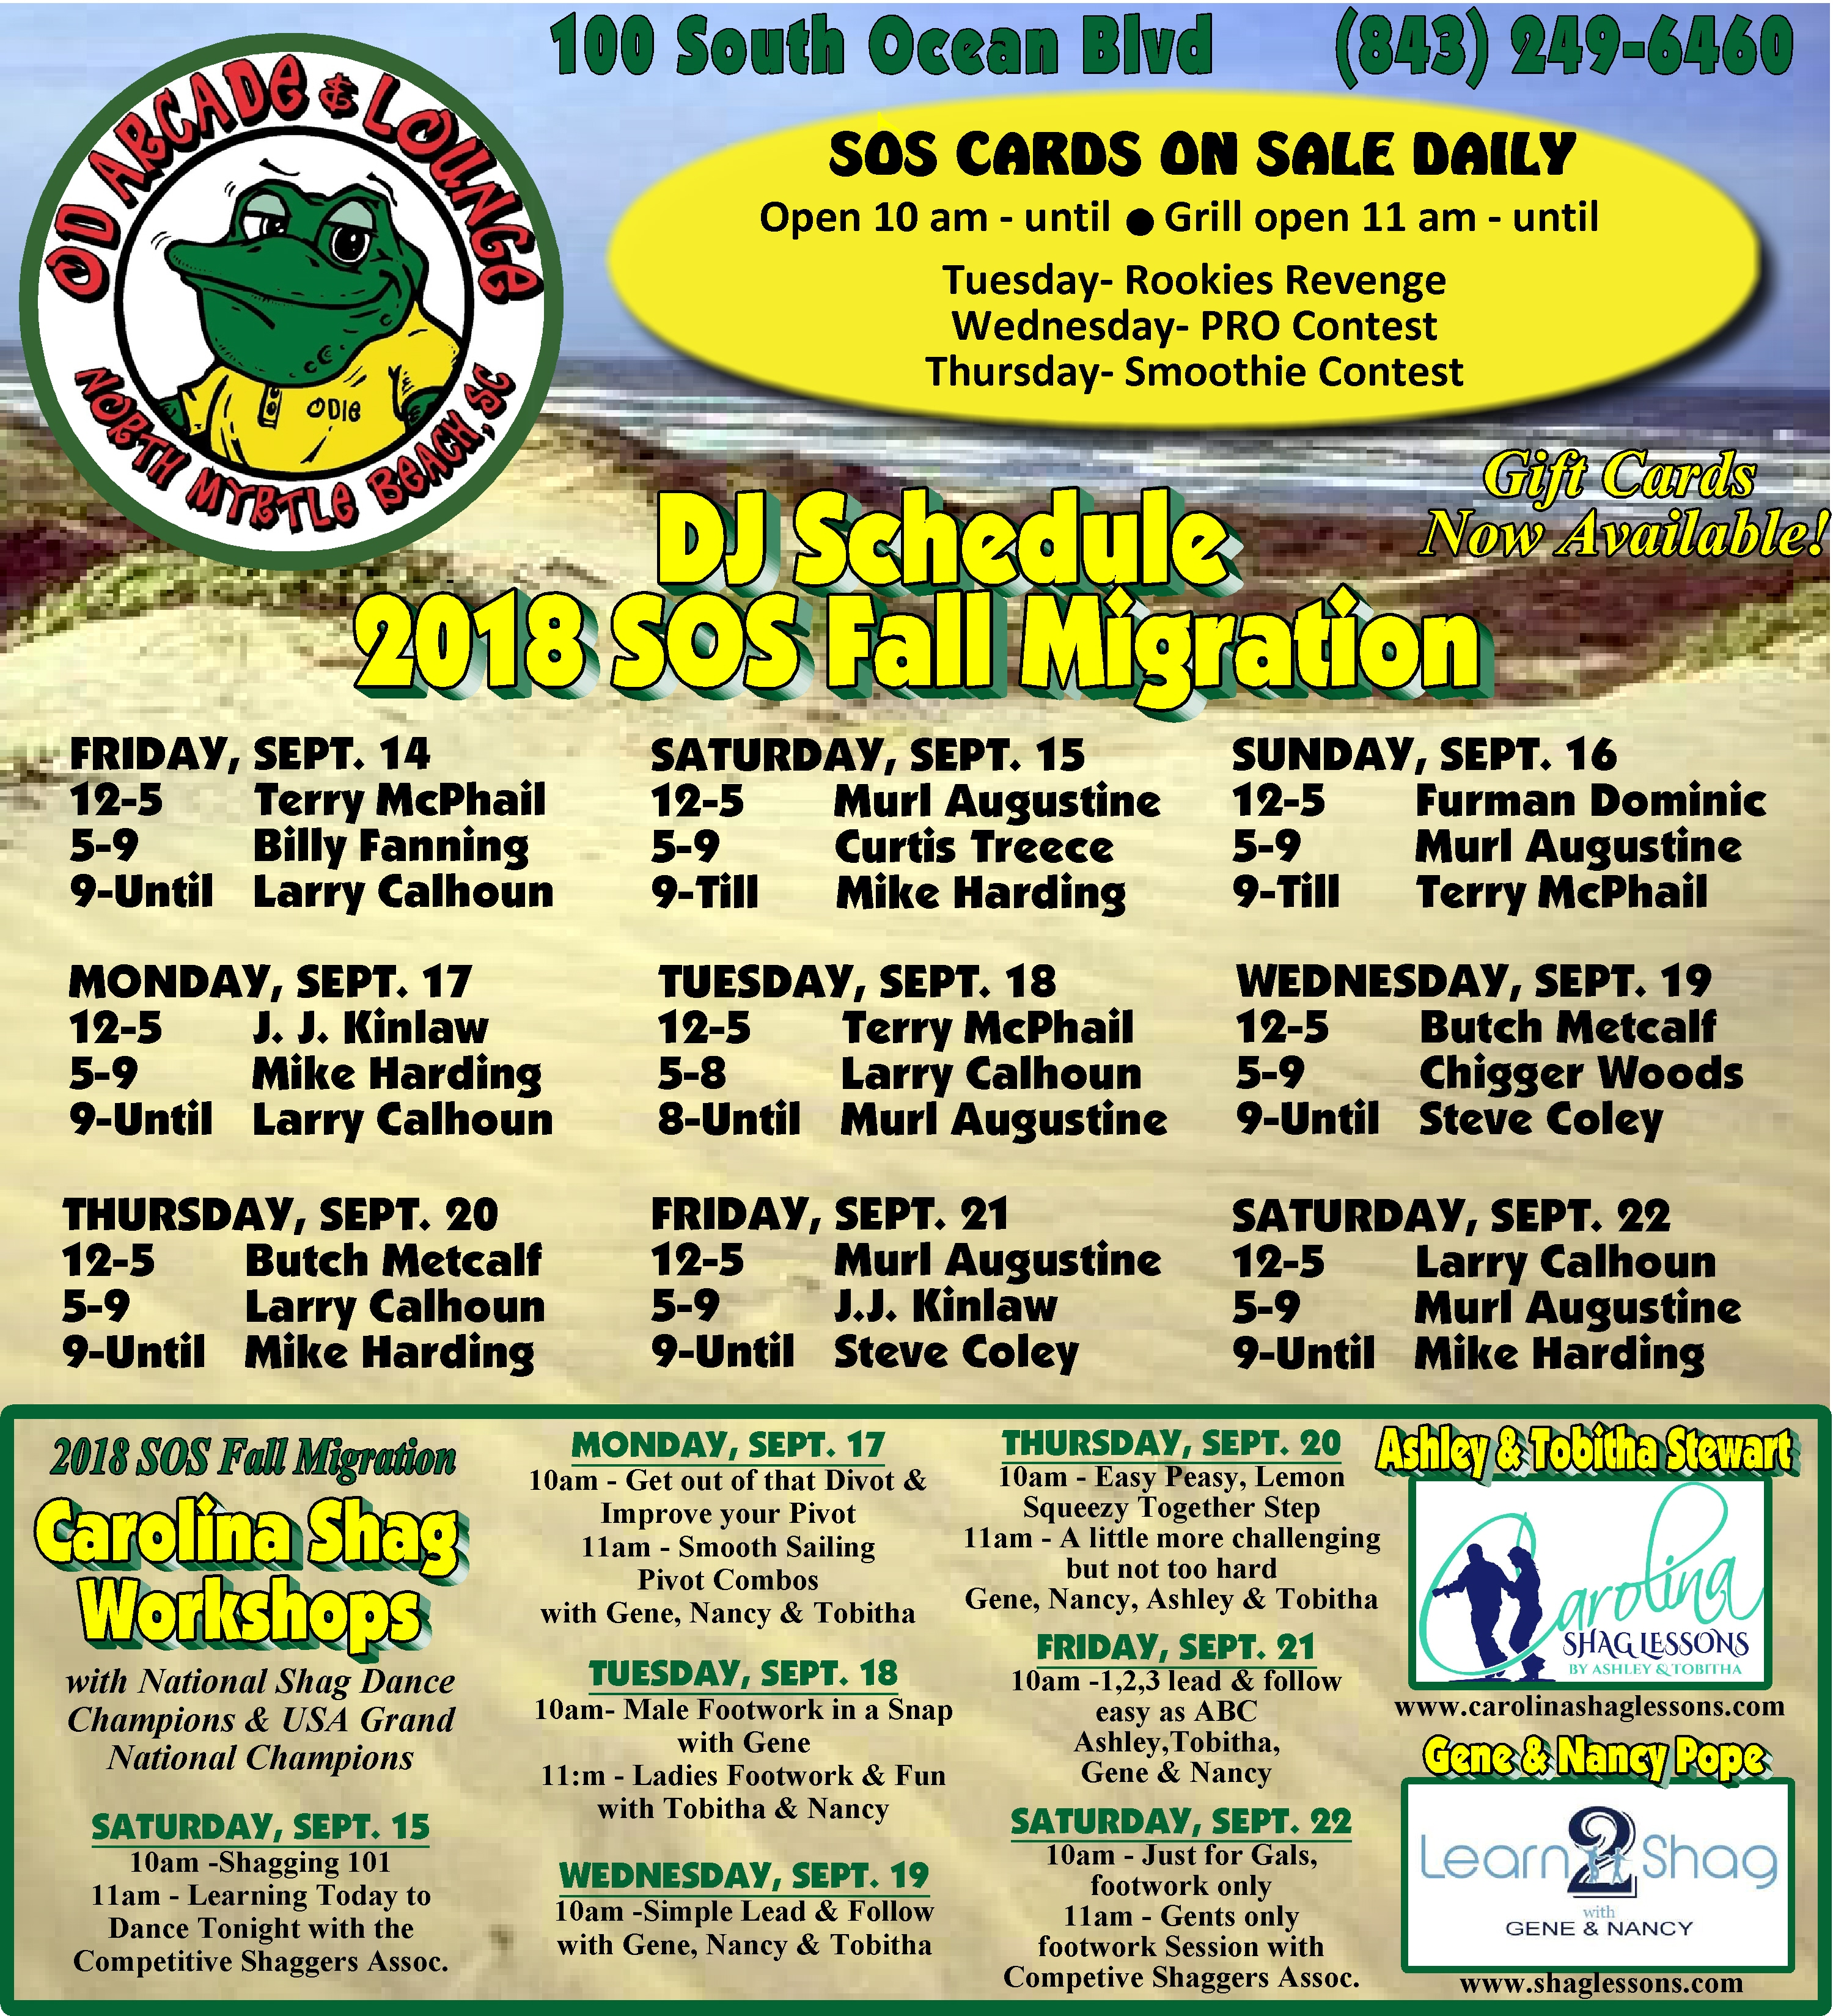 sos lounges and dj schedules